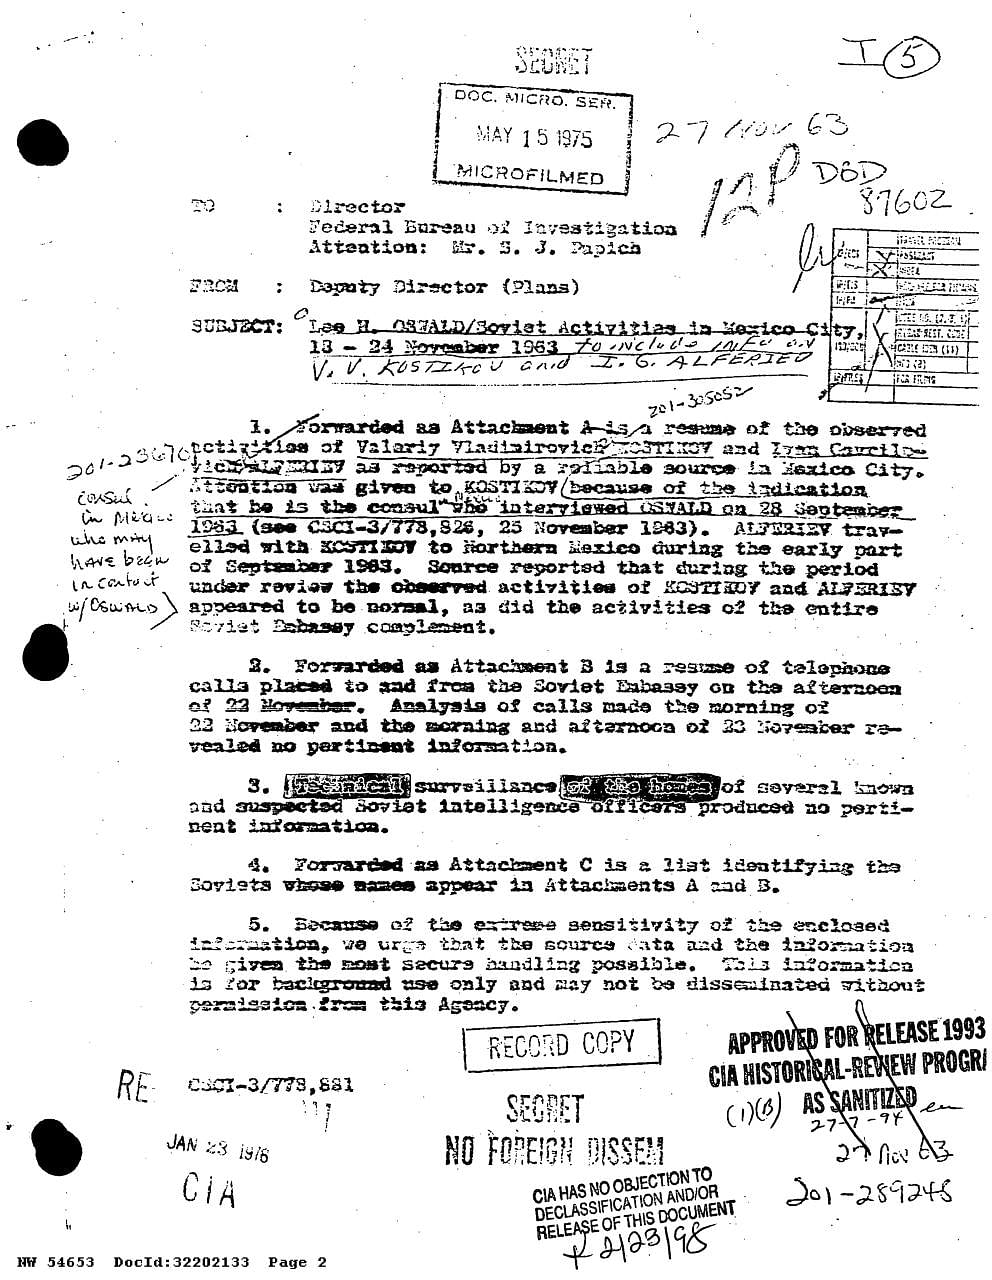 An FBI report about former president John F. Kennedy's killer Lee Harvey Oswald released by the National Archives.